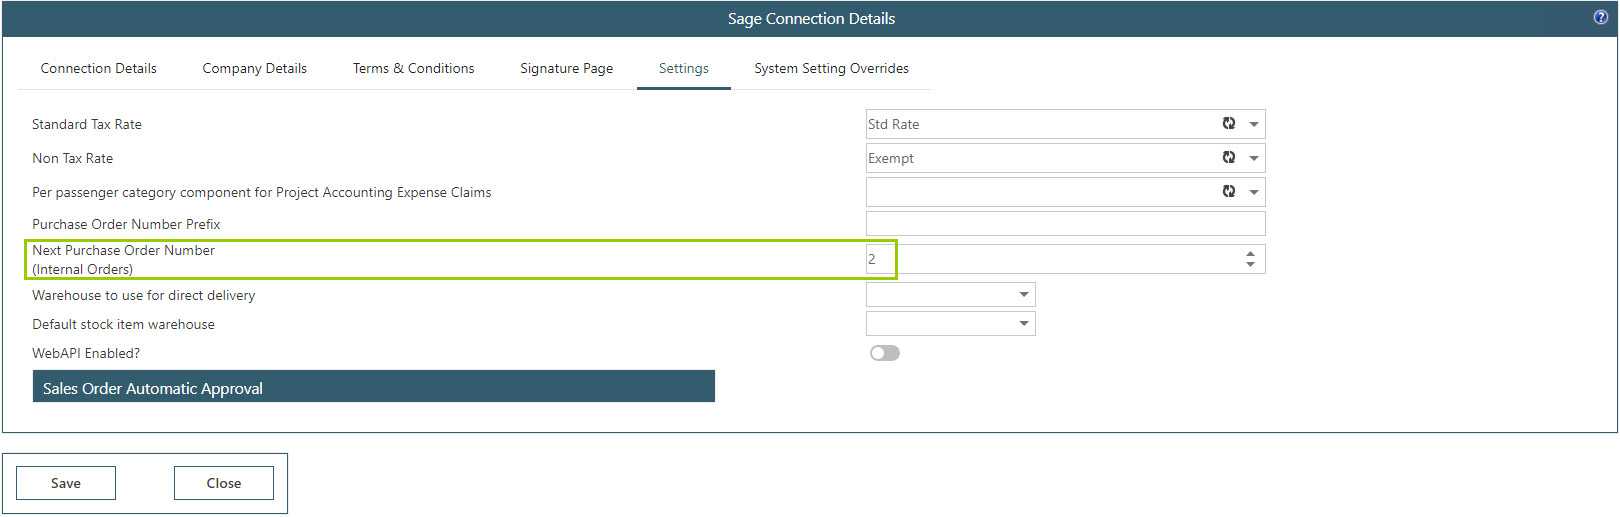 Sicon WAP Purchase Requisitions Help and User Guide - Requisition HUG Section 14.3 Image 1